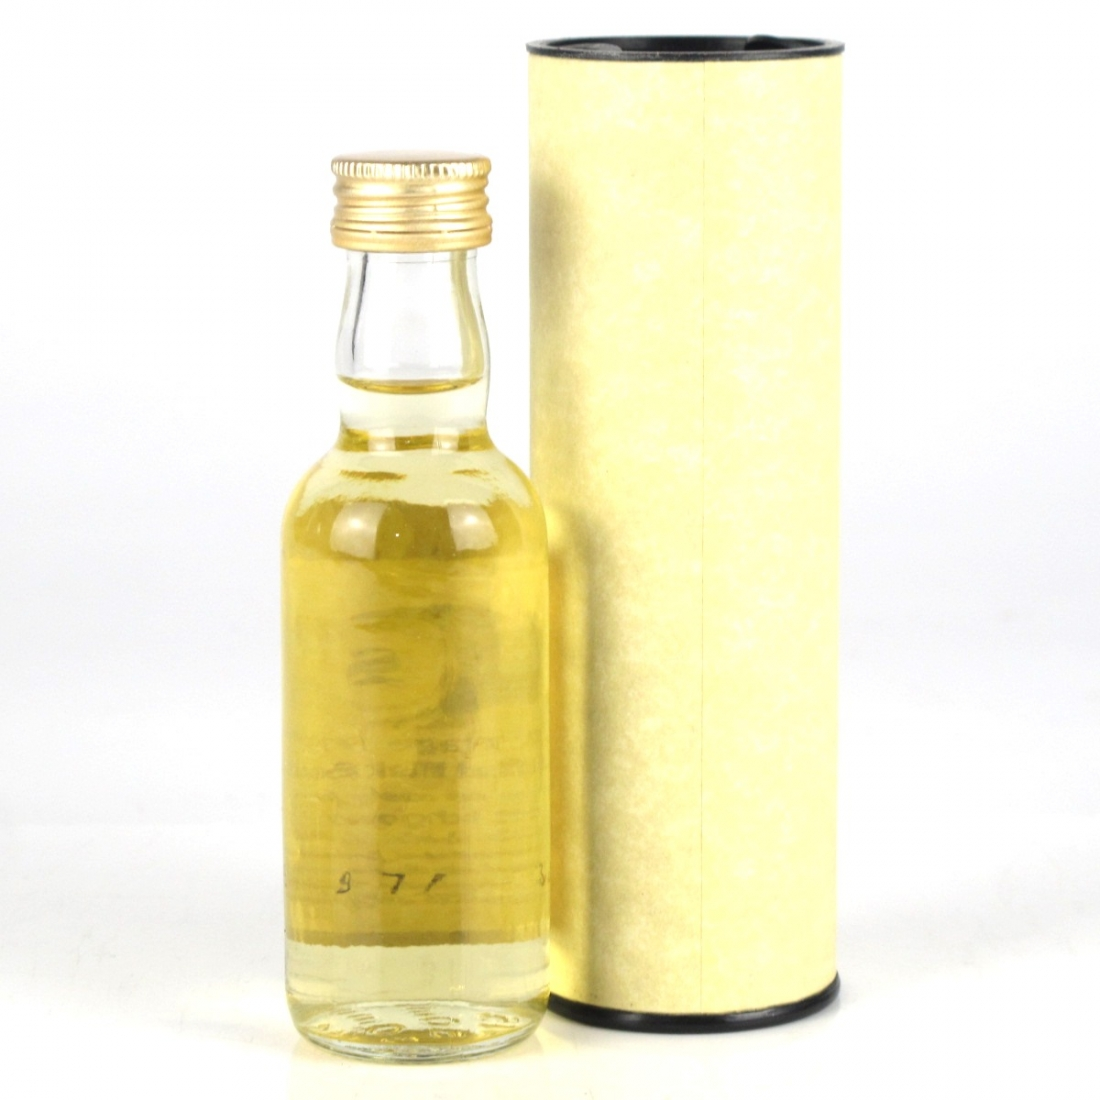 Inchgower 1979 Signatory Vintage 15 Year Old Miniature 5cl